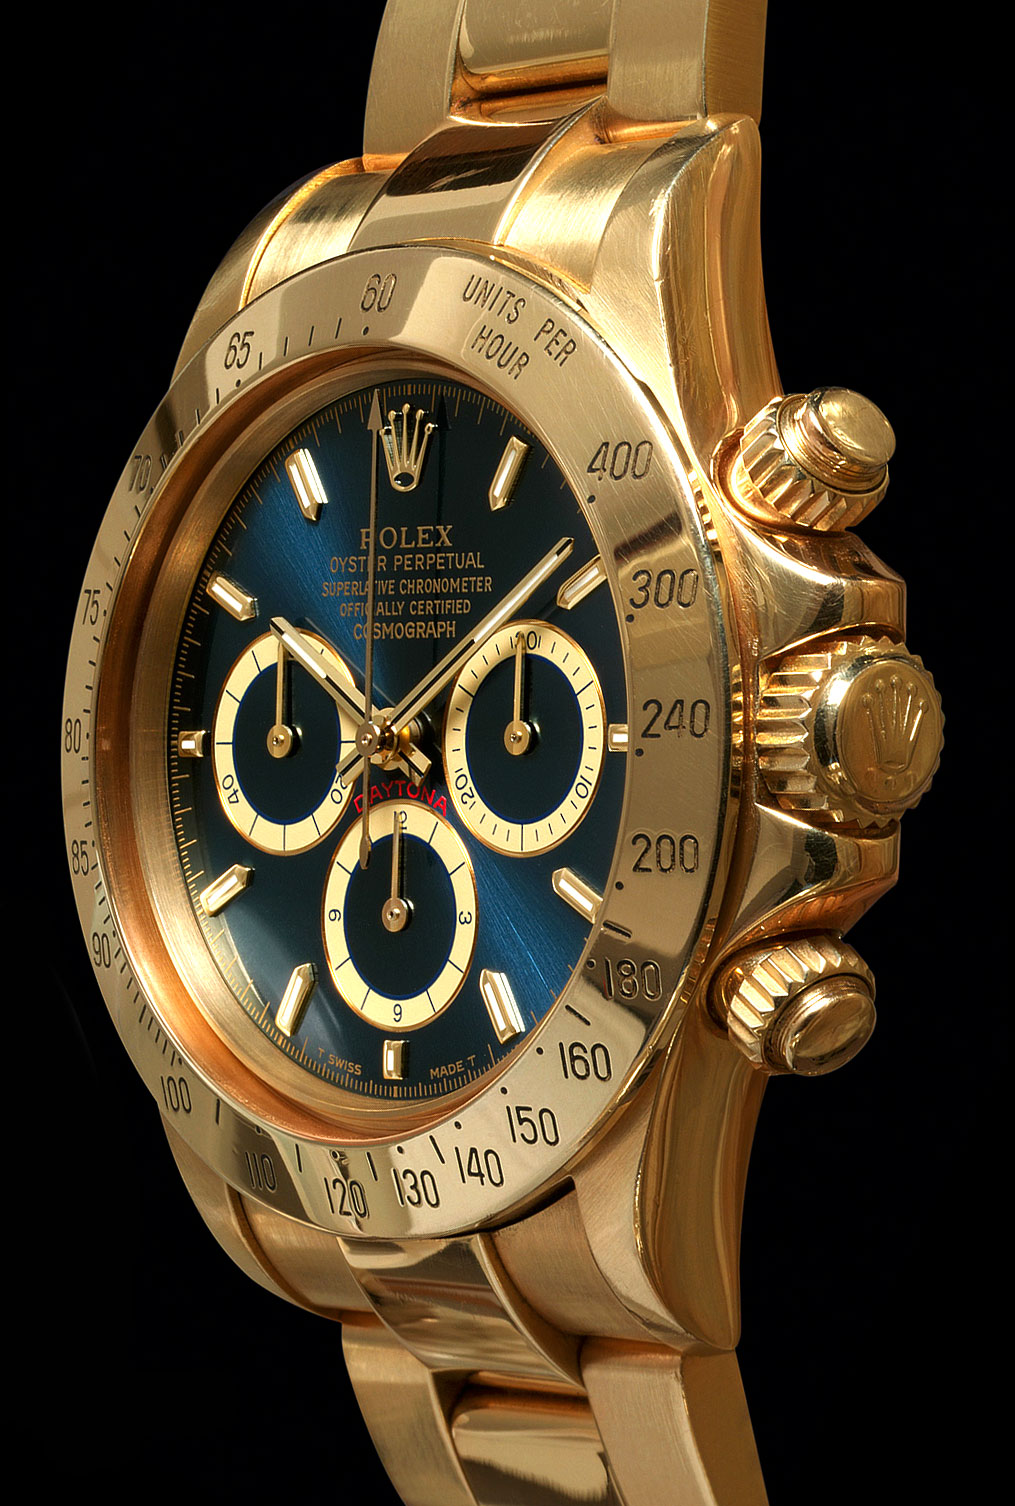 welcome to rolexmagazine com home of jake s rolex world magazine welcome to rolexmagazine com home of jake s rolex world magazine optimized for ipad and iphone the complete history of the rolex daytona cosmograph